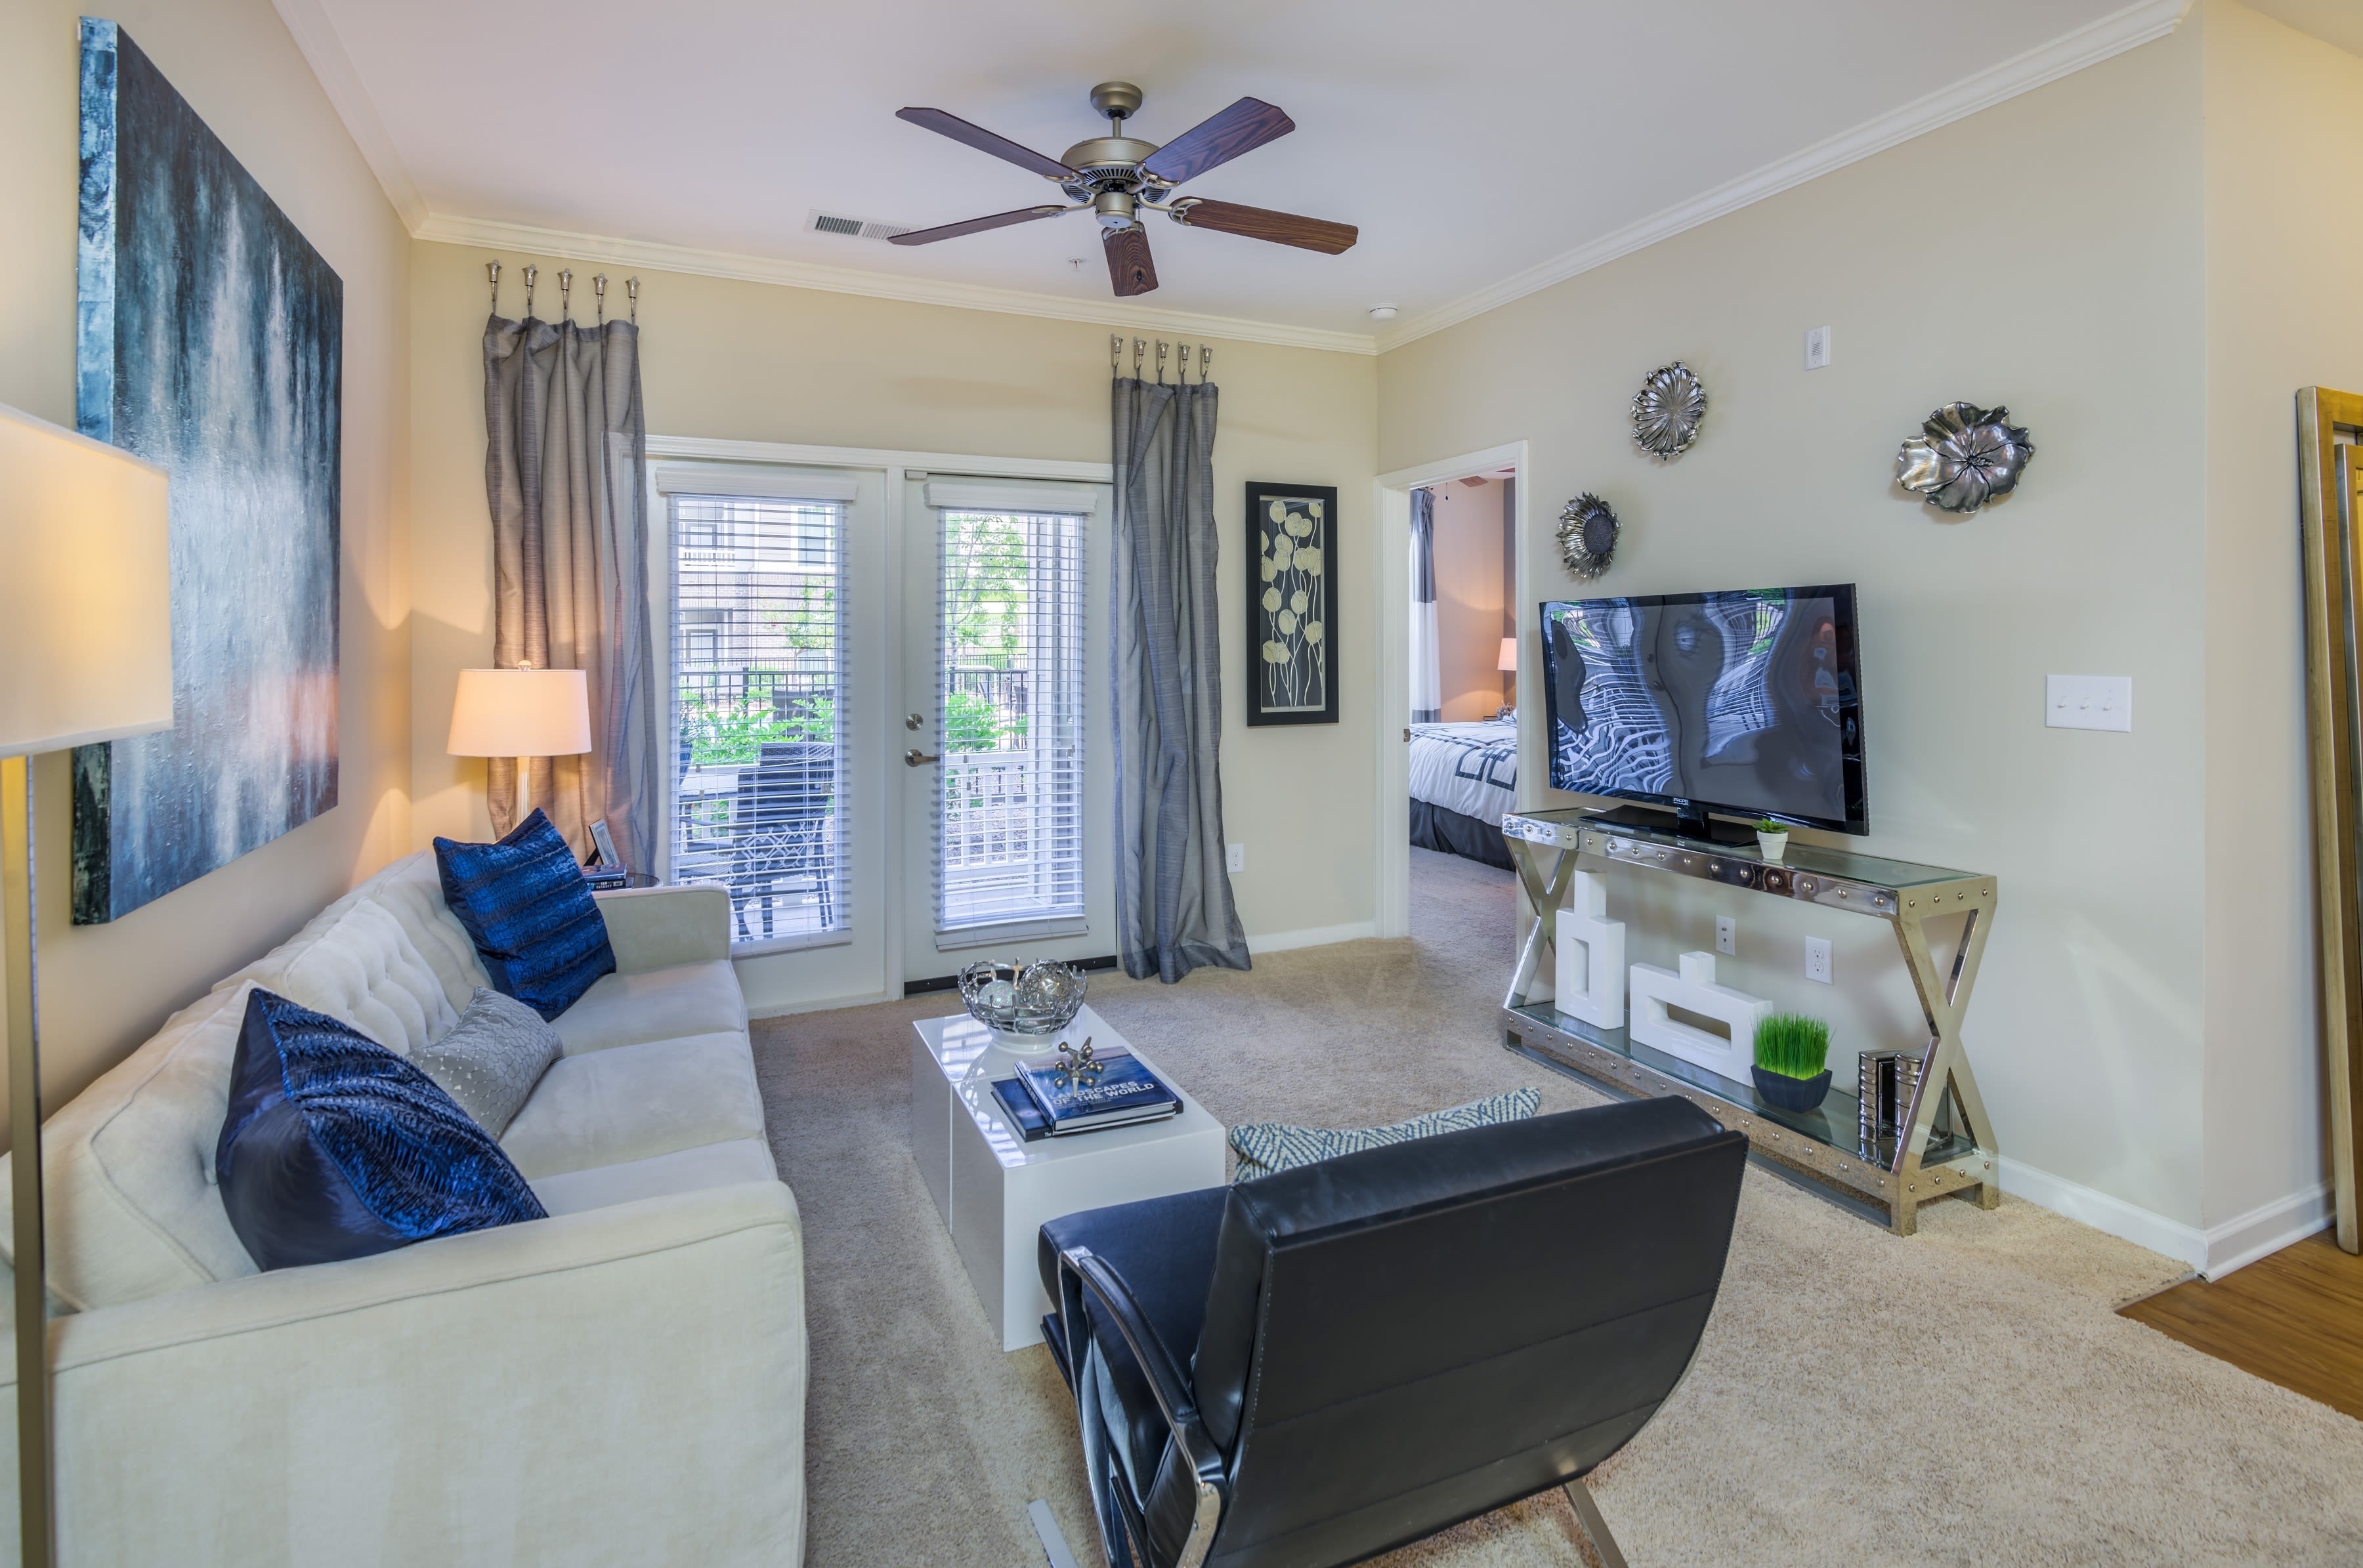 Our apartments in Raleigh, North Carolina showcase renovated interiors